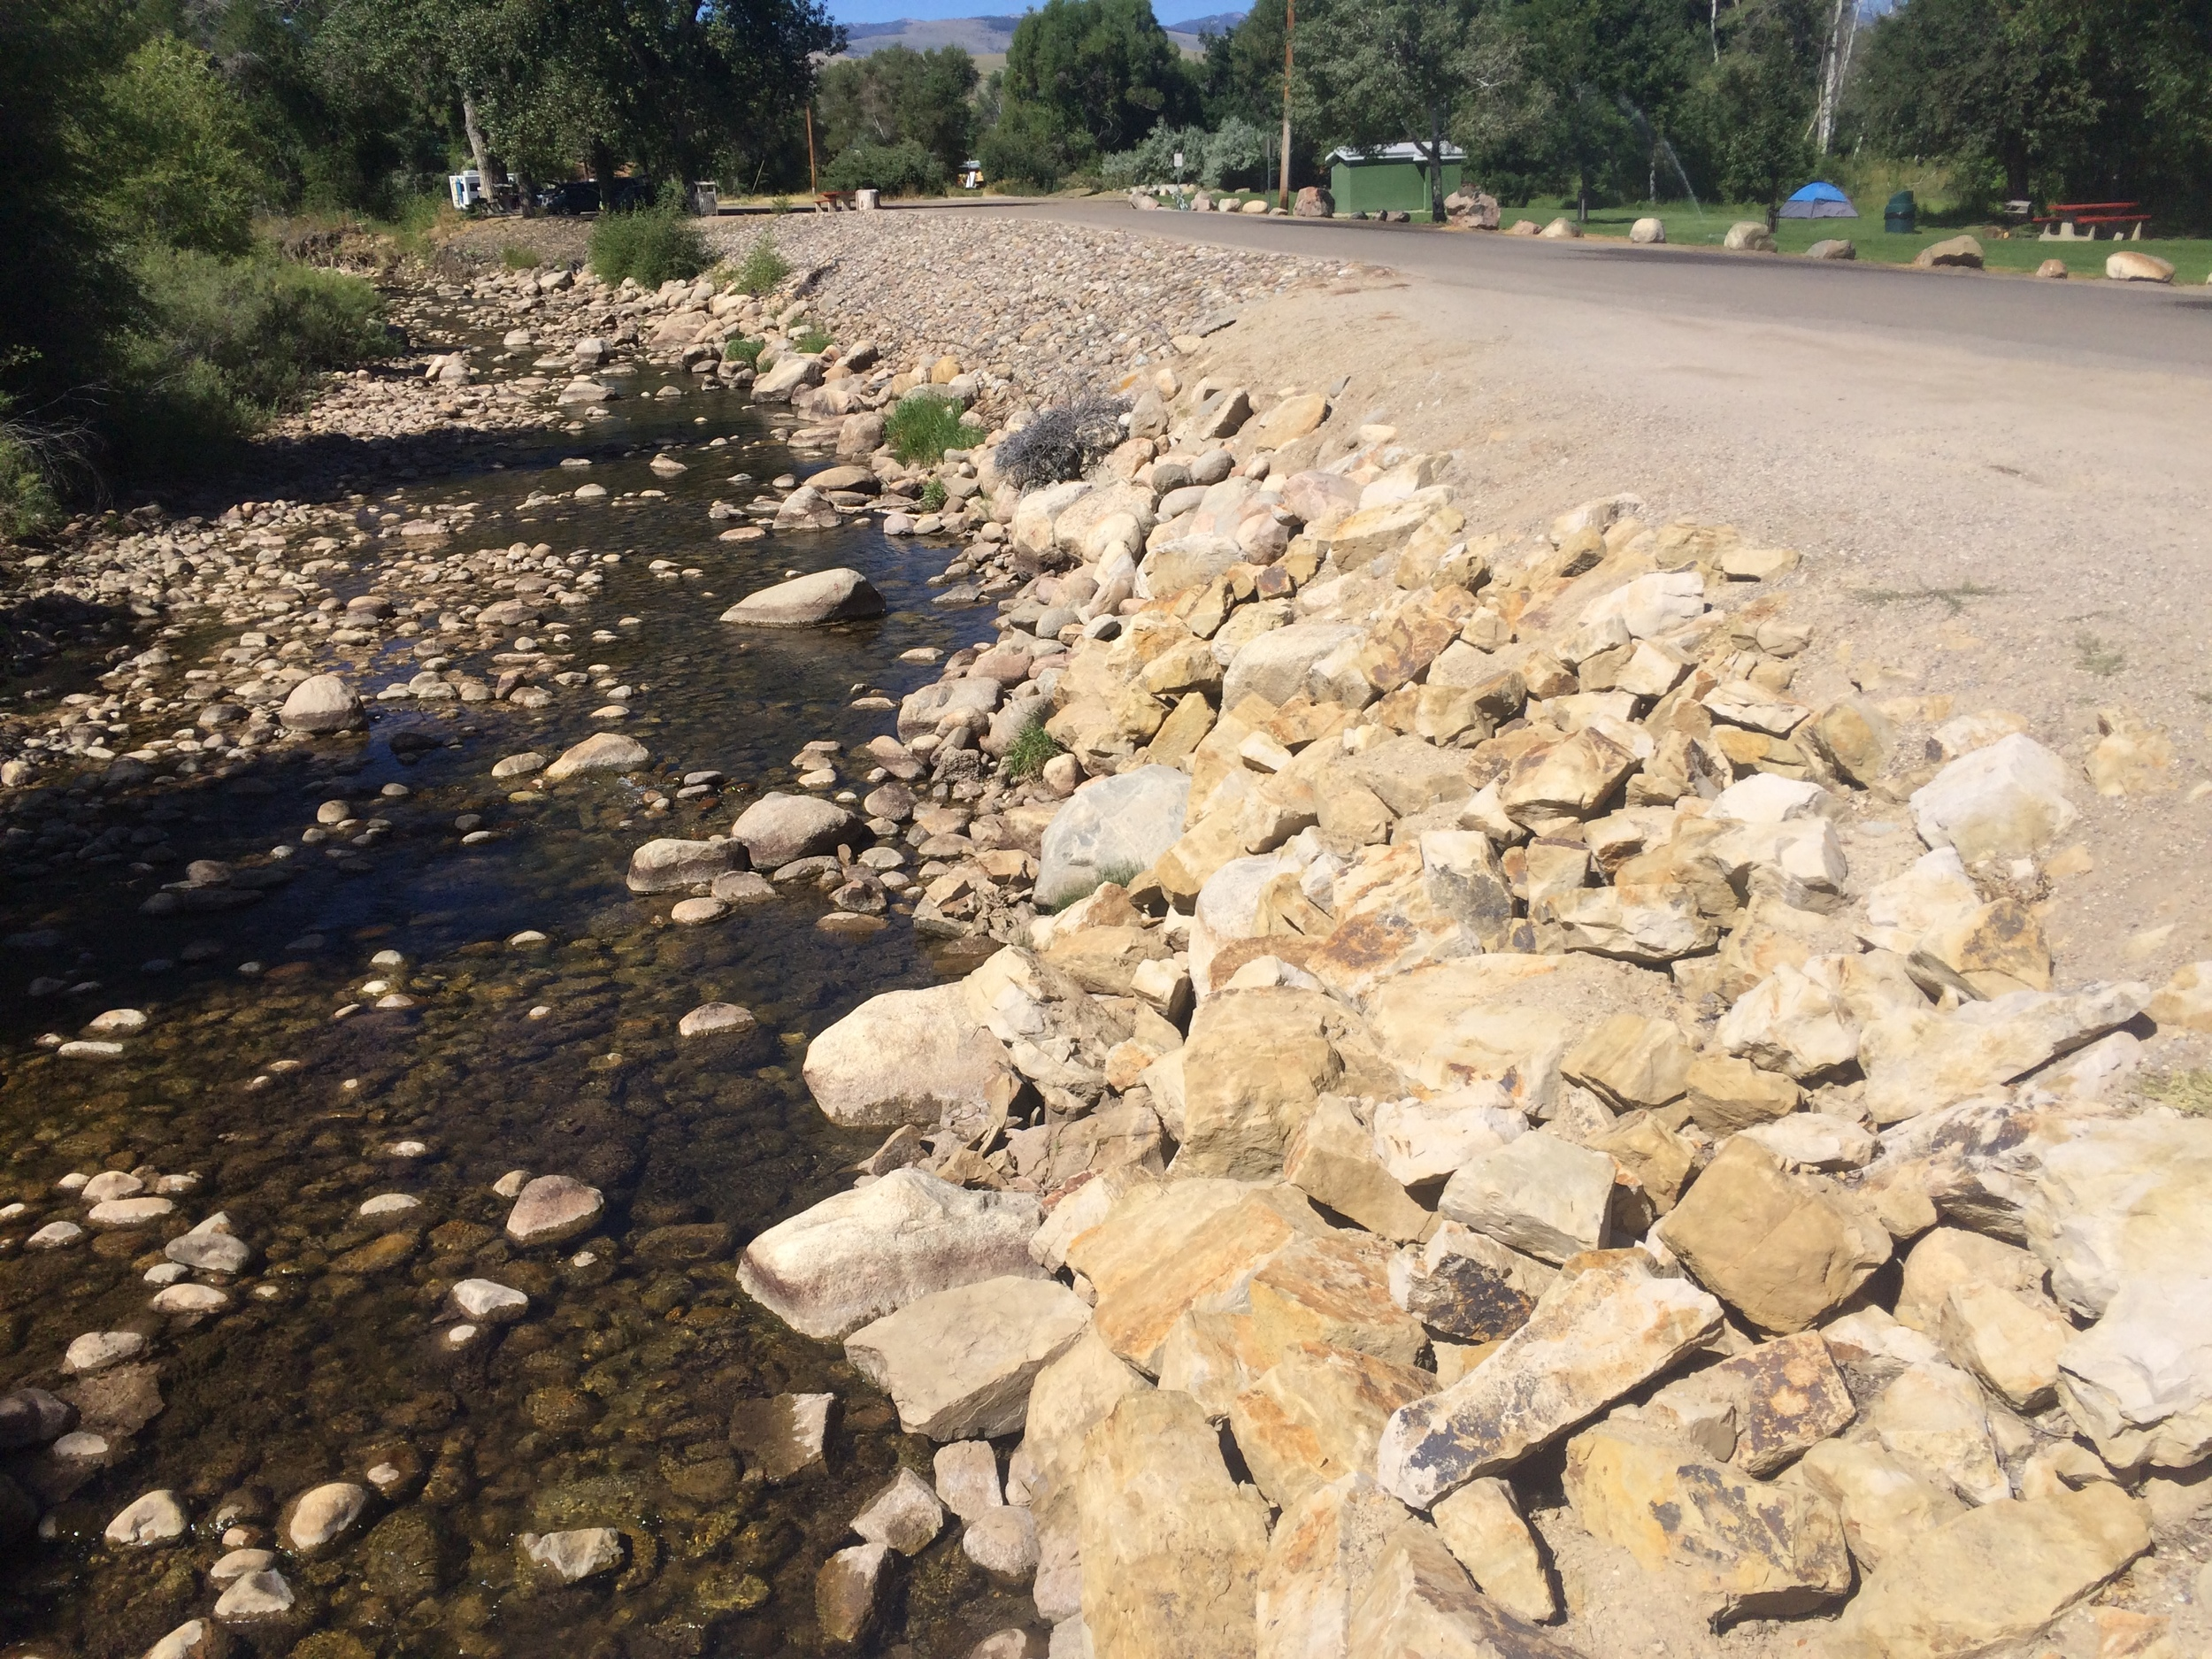 2015 - Post-flood. Rip-rapped banks and a channel with little definition or habitat